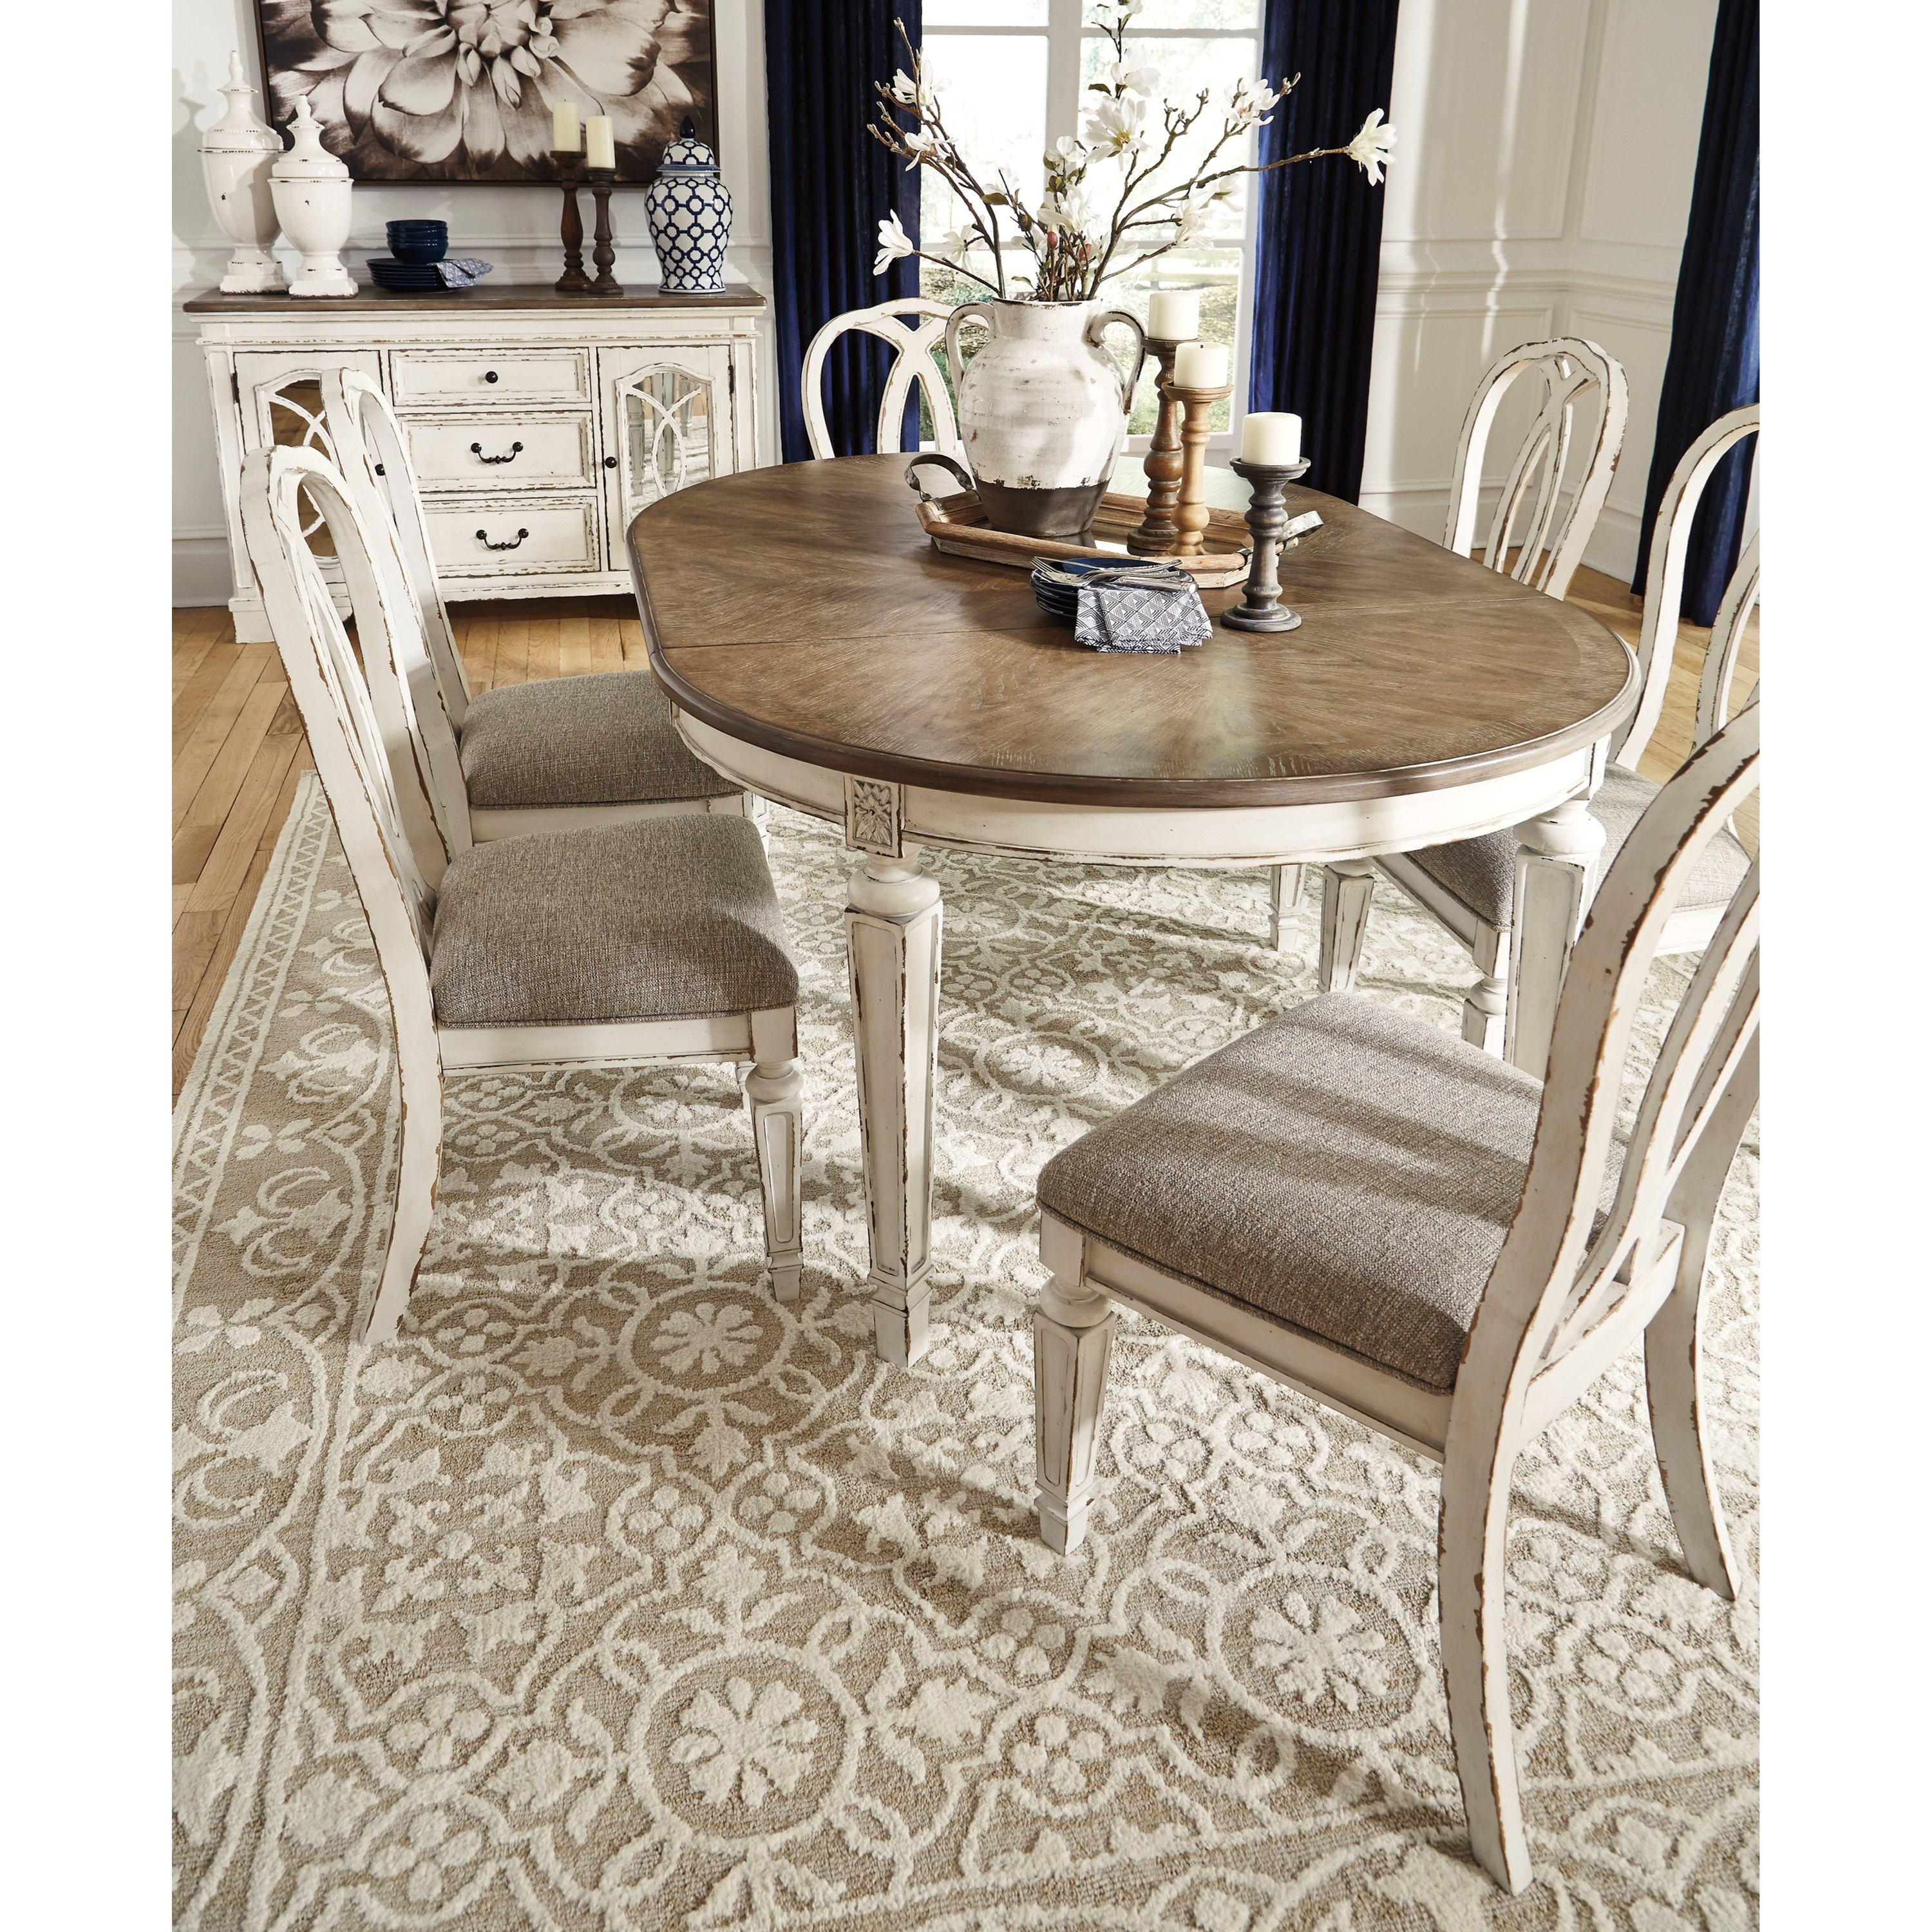 Signature Design By Ashley Furniture Hayley 7 Piece Dining: Signature Design By Ashley Realyn 7-Piece Round Table And